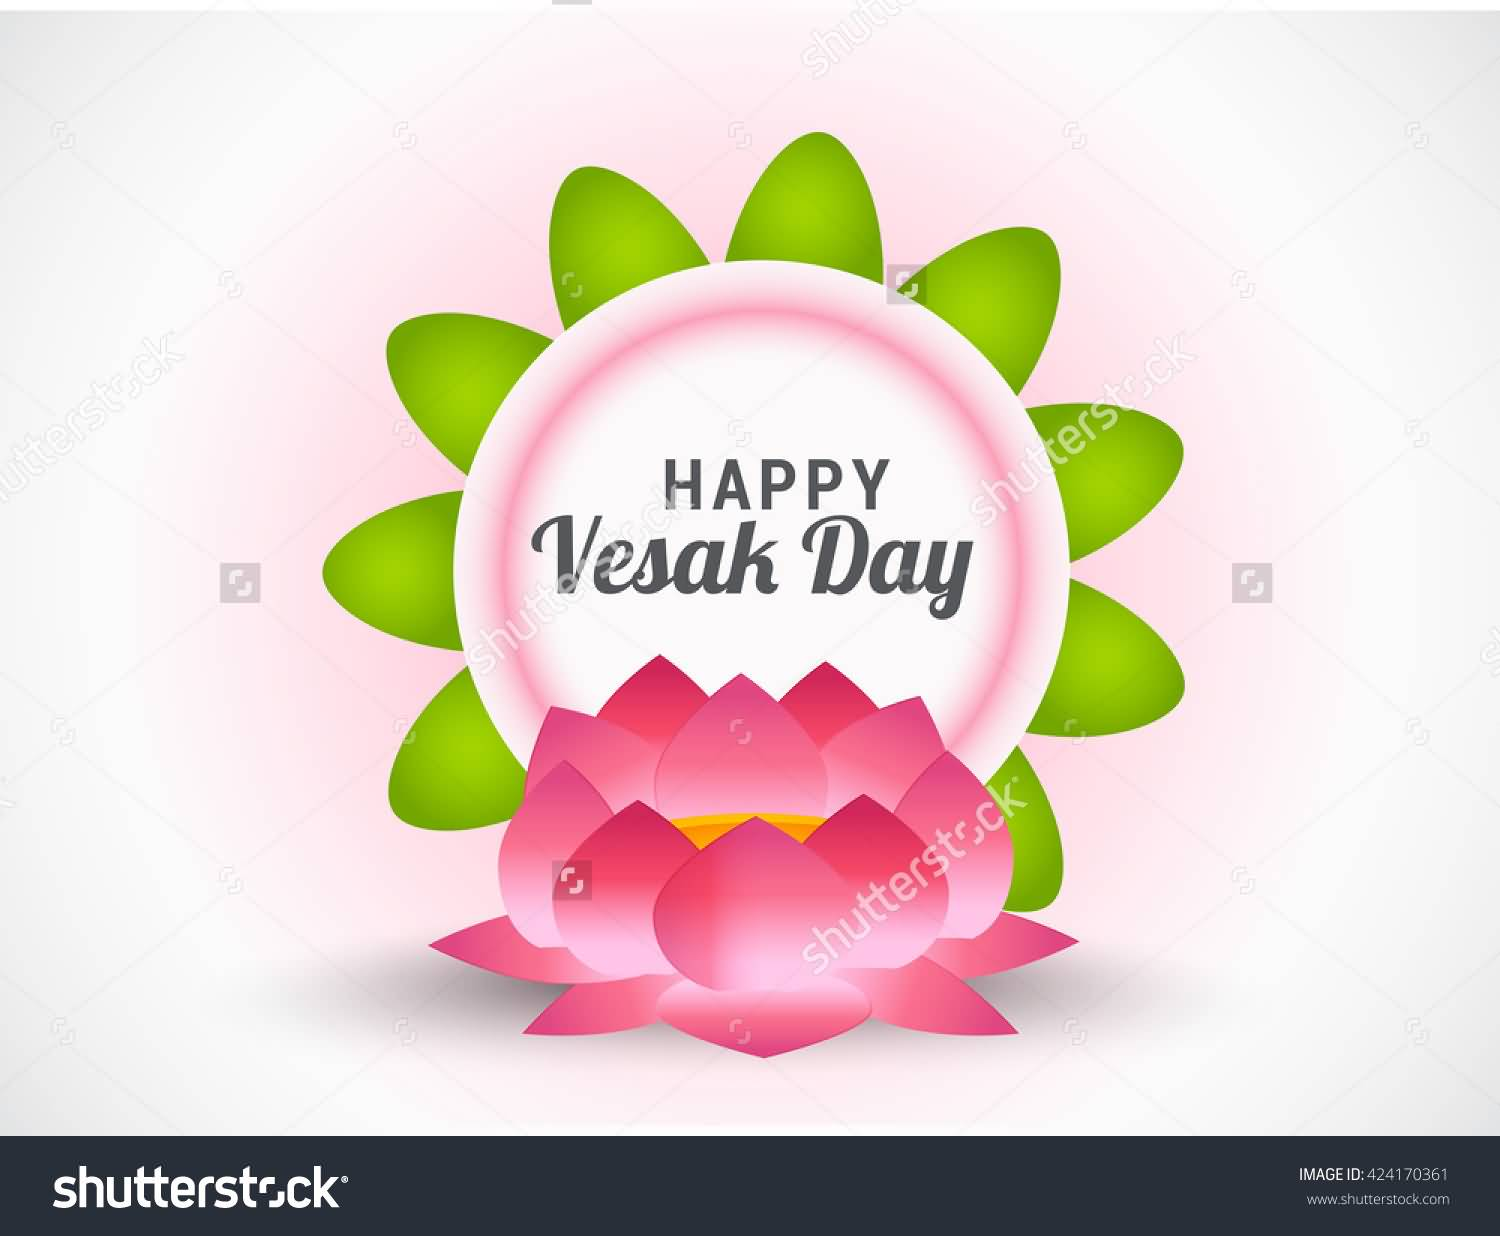 Wesak day clipart png freeuse 50+ Best Vesak Day Wish Pictures And Photos png freeuse